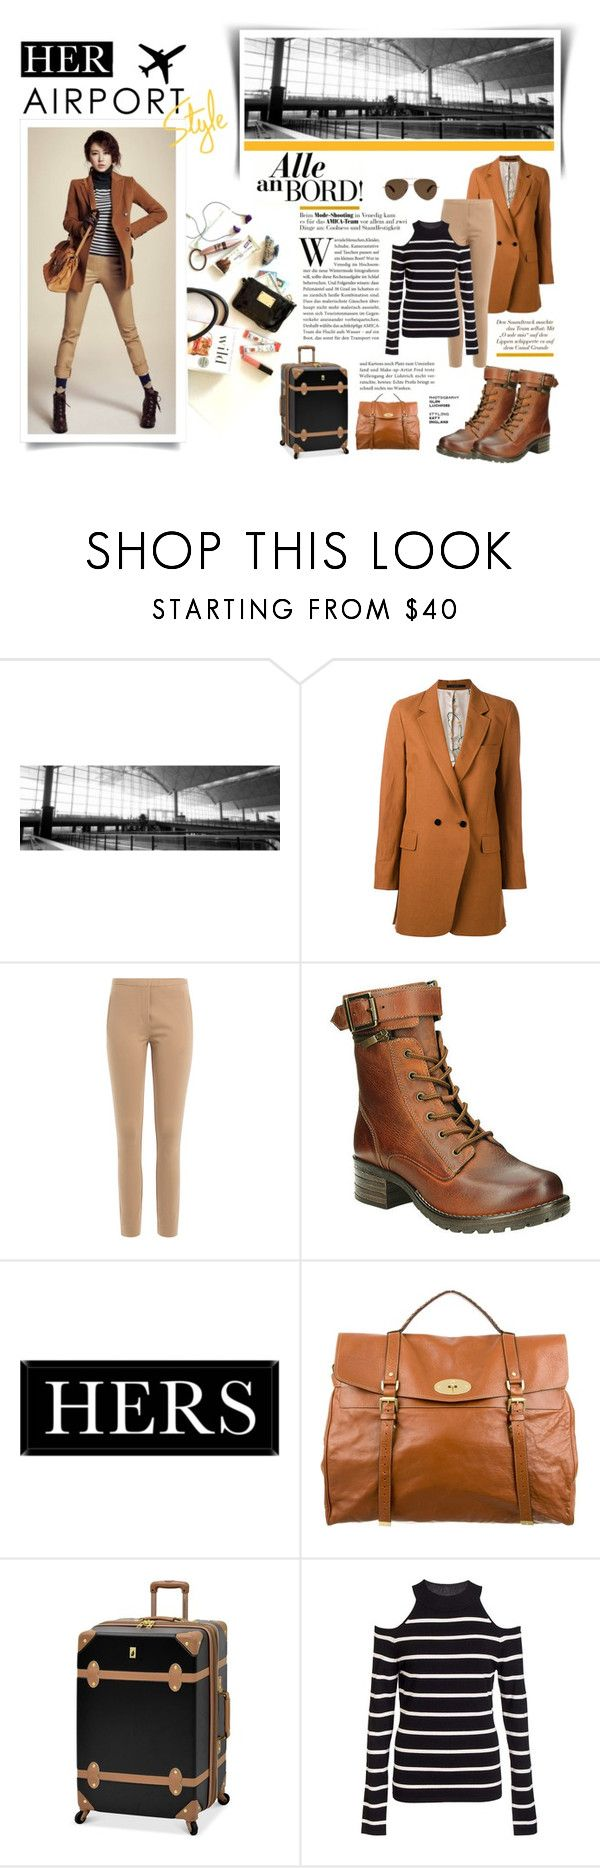 """""""The Classic Airport Style"""" by atikazahra on Polyvore featuring Paul Smith, By Malene Birger, taos Footwear, Universal Lighting and Decor, Mulberry, London Fog, Dorothy Perkins, travel, stripes and Trendy"""